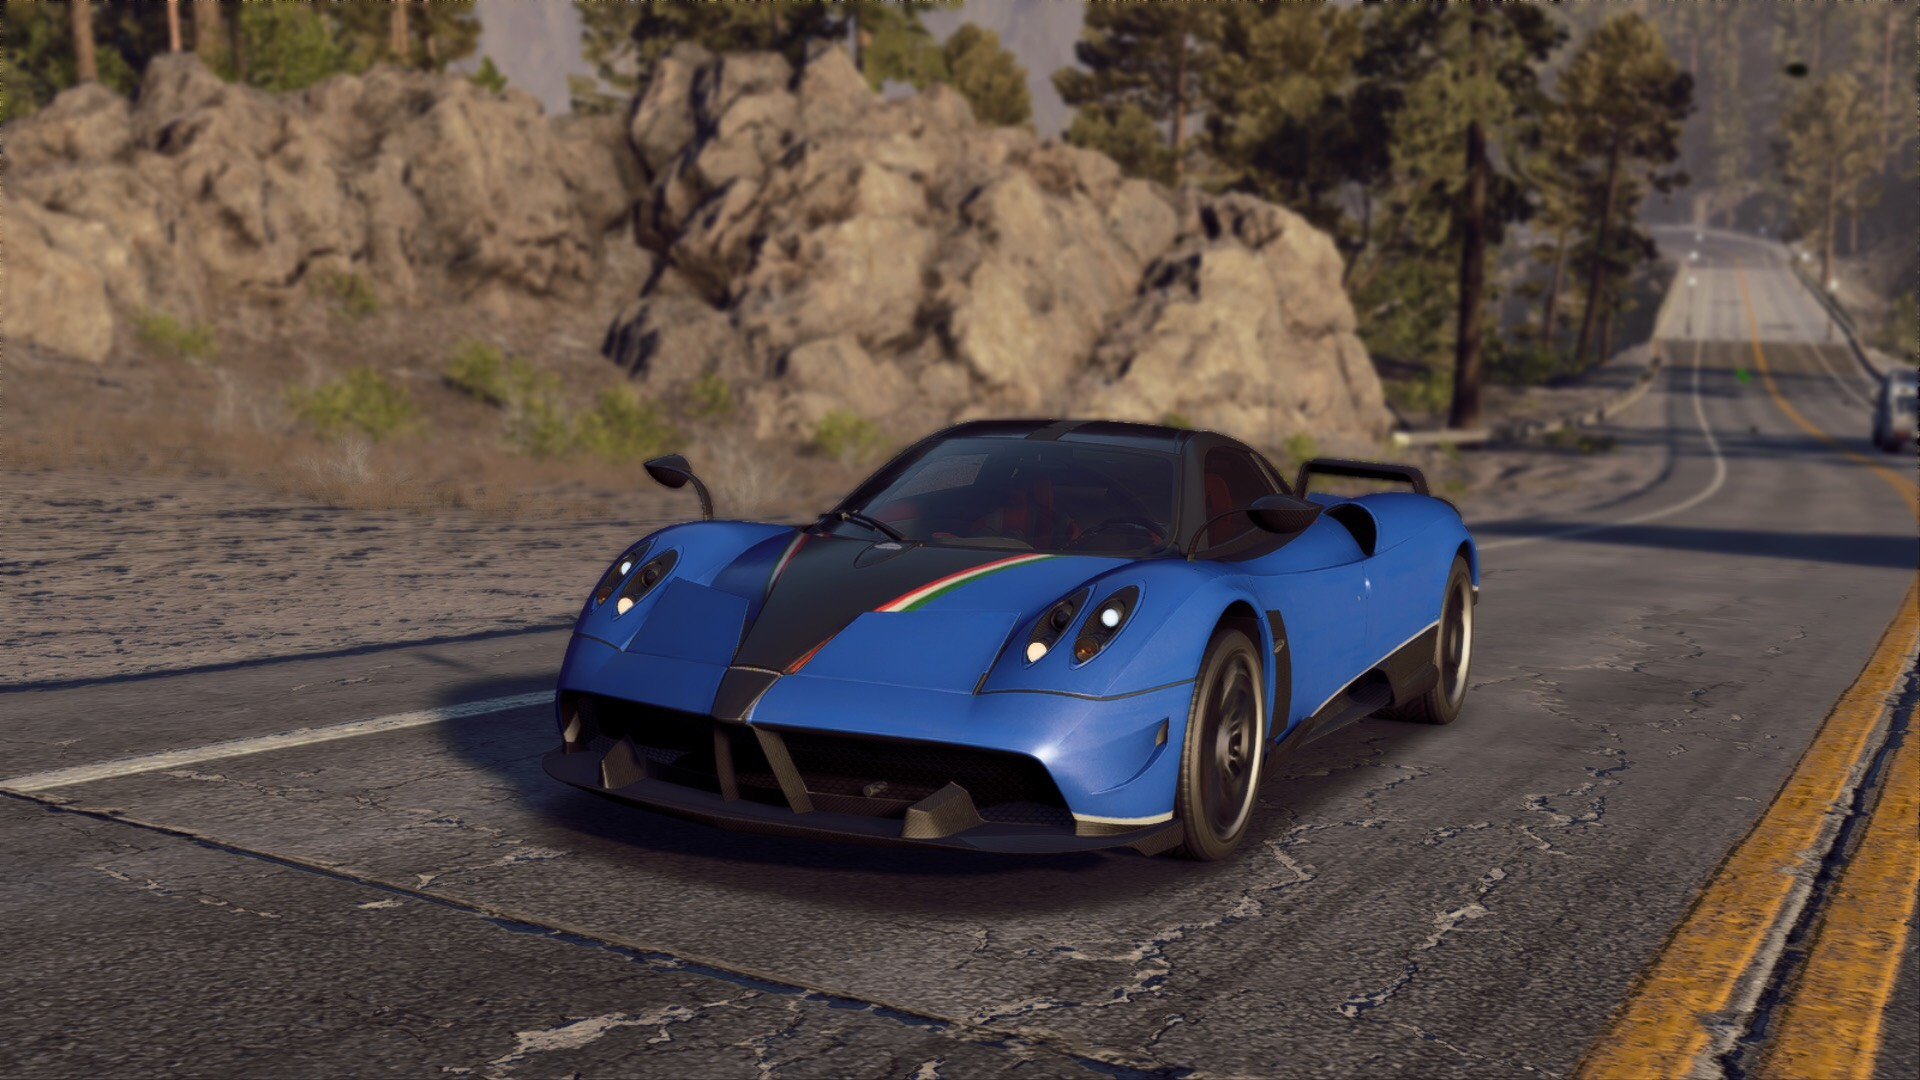 NFS Payback is basically a Pagani Huayra one of one configurator. I